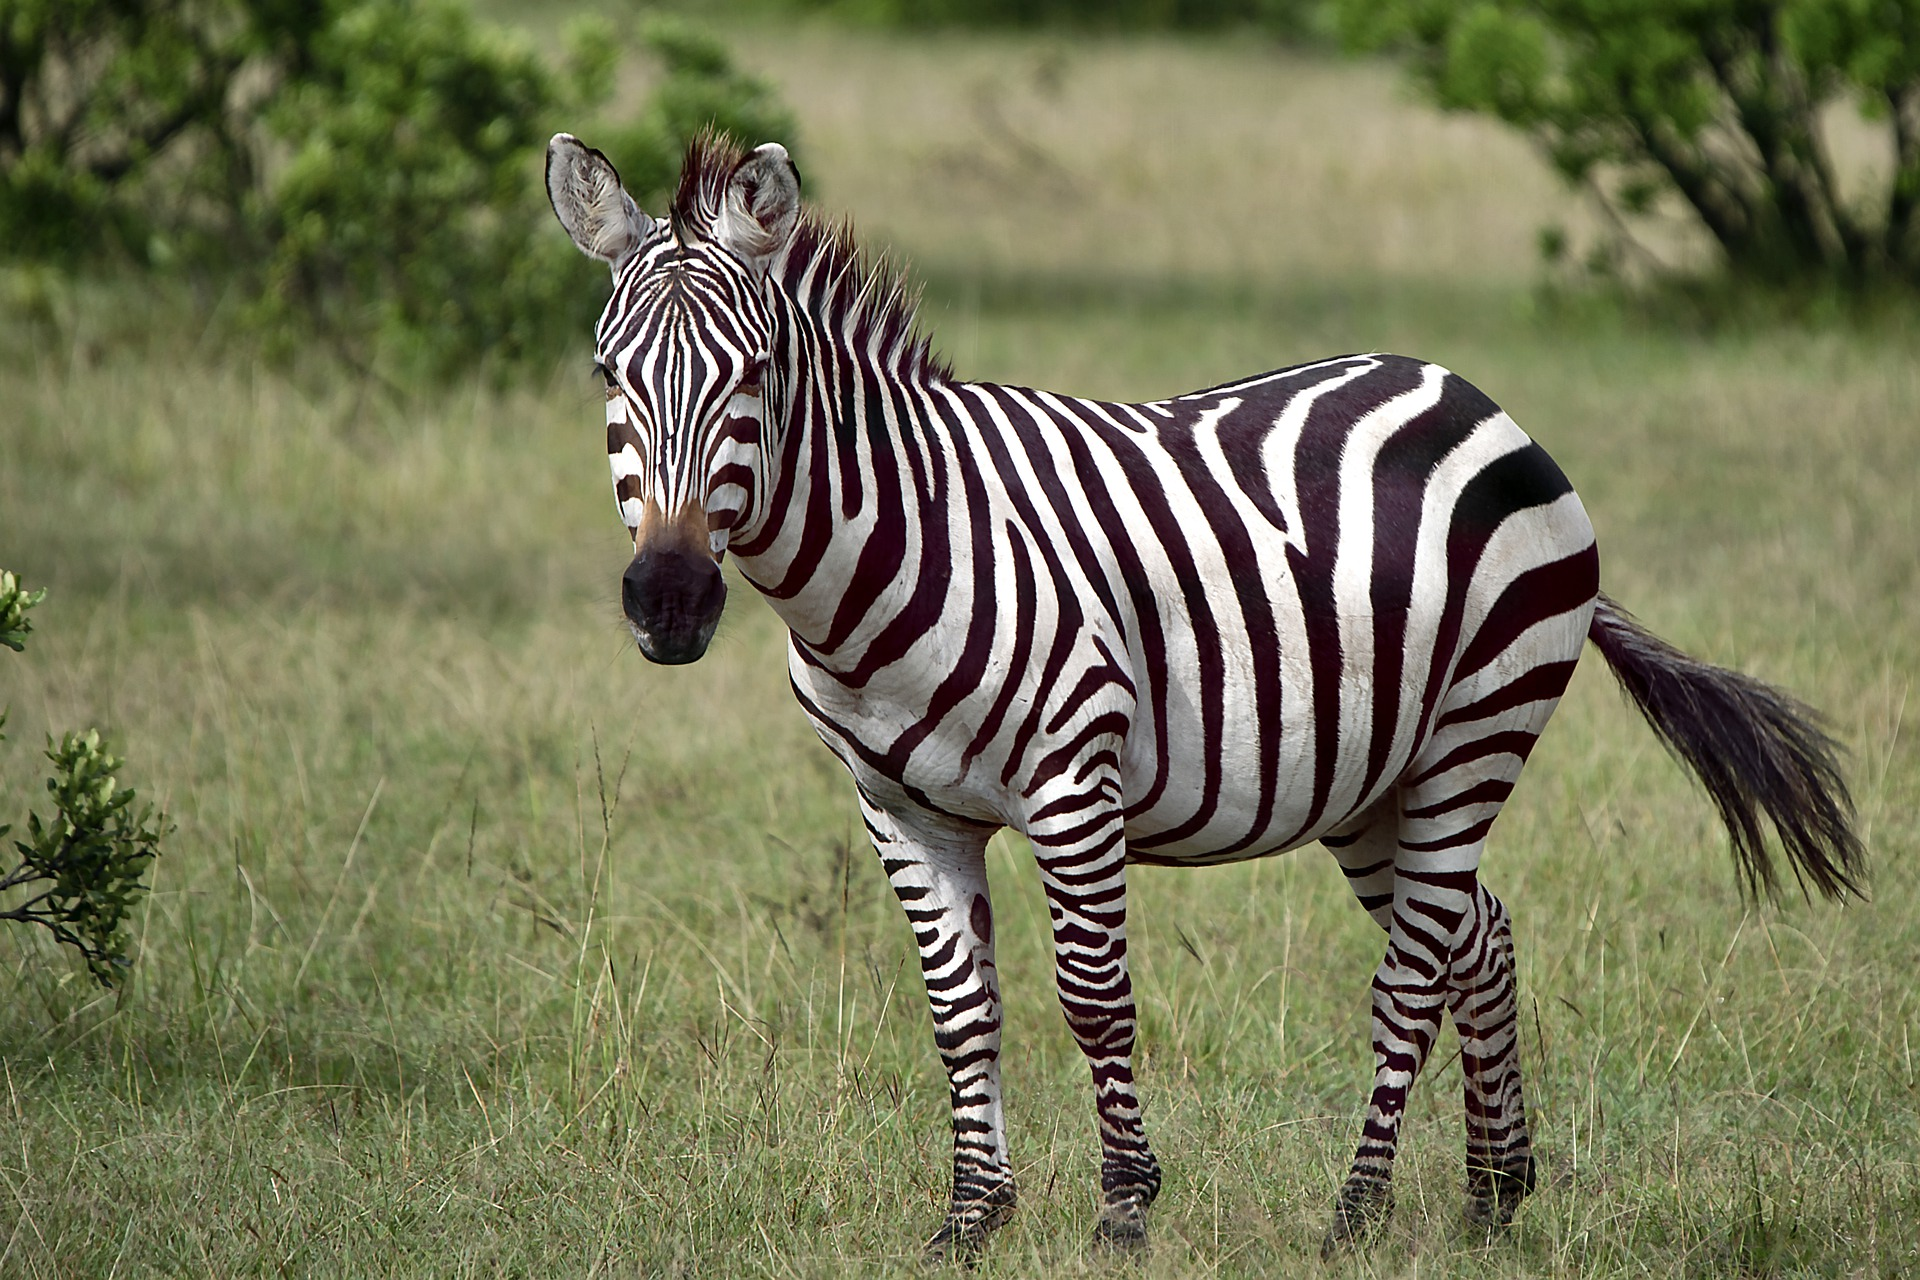 Group of zebras evading capture in Maryland - ABC News